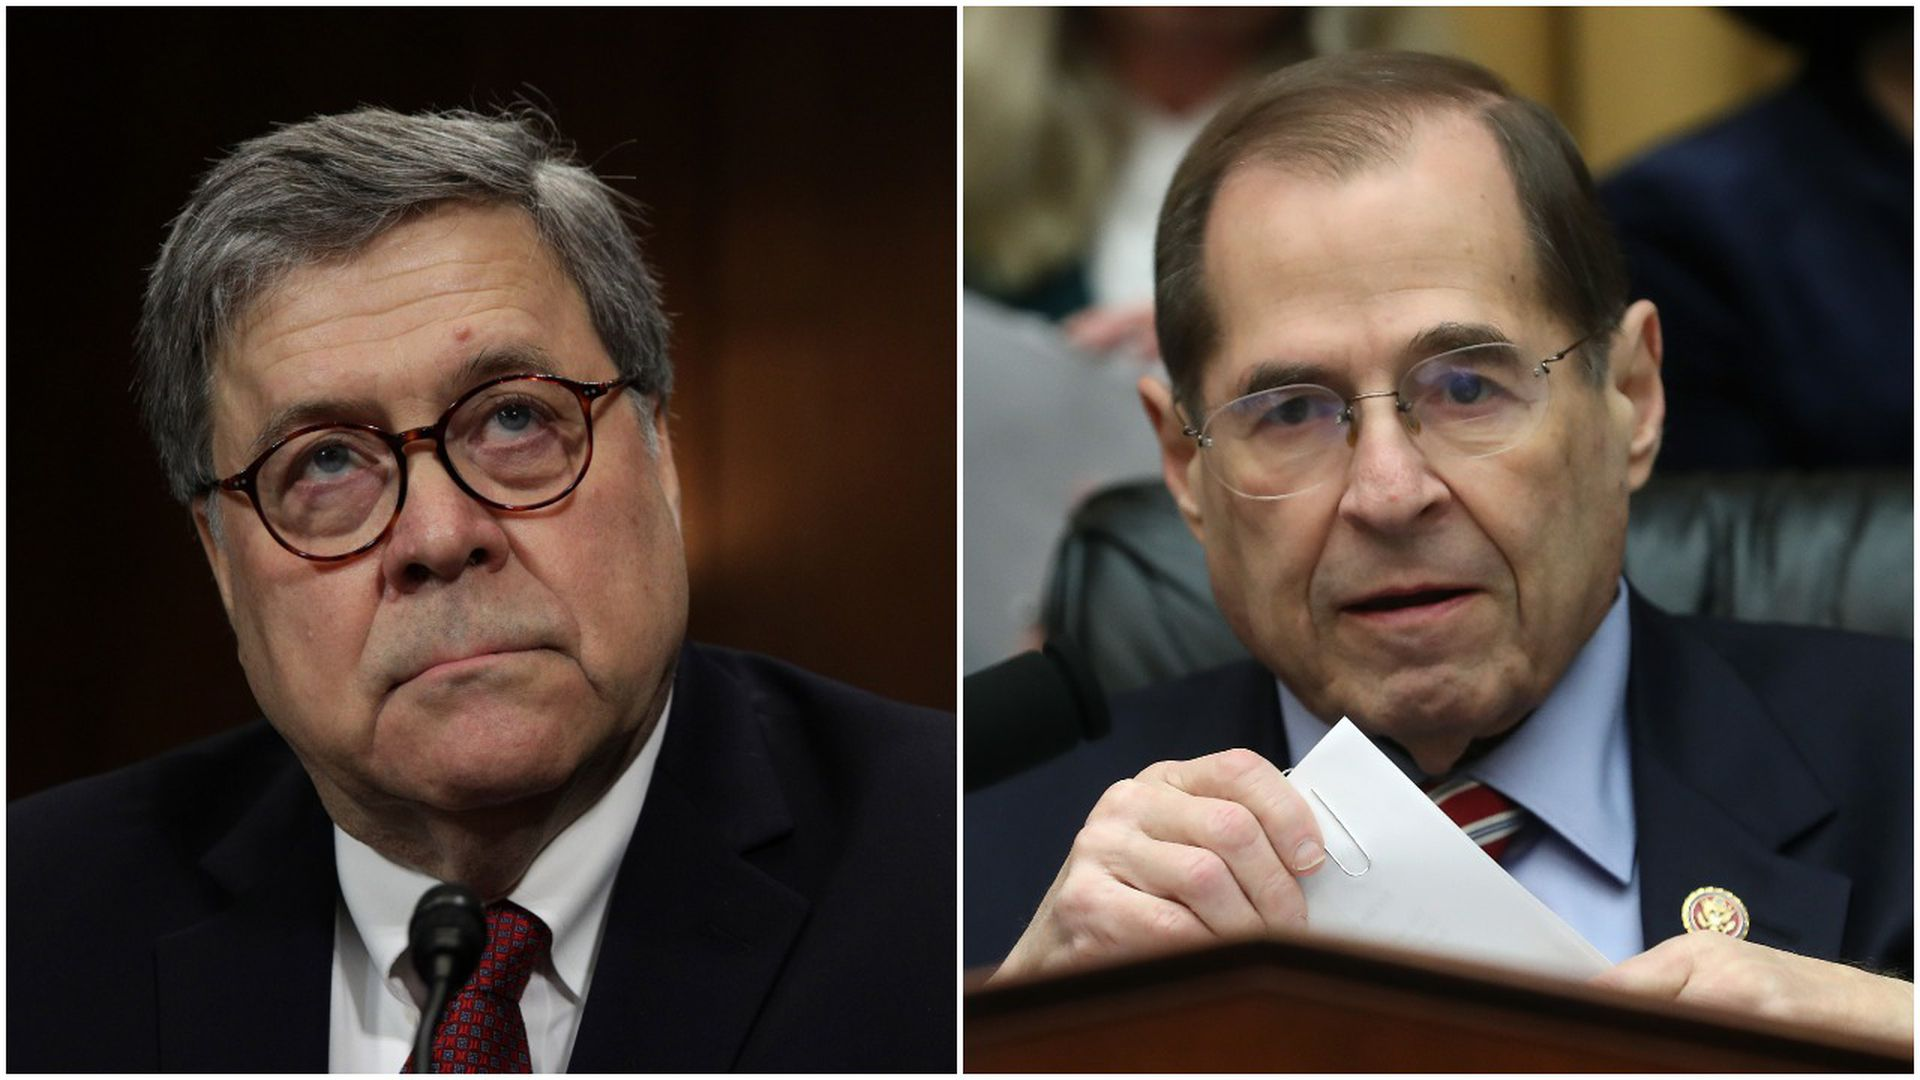 This image is a split screen between Attorney General Bill Barr and Jerry Nadler.